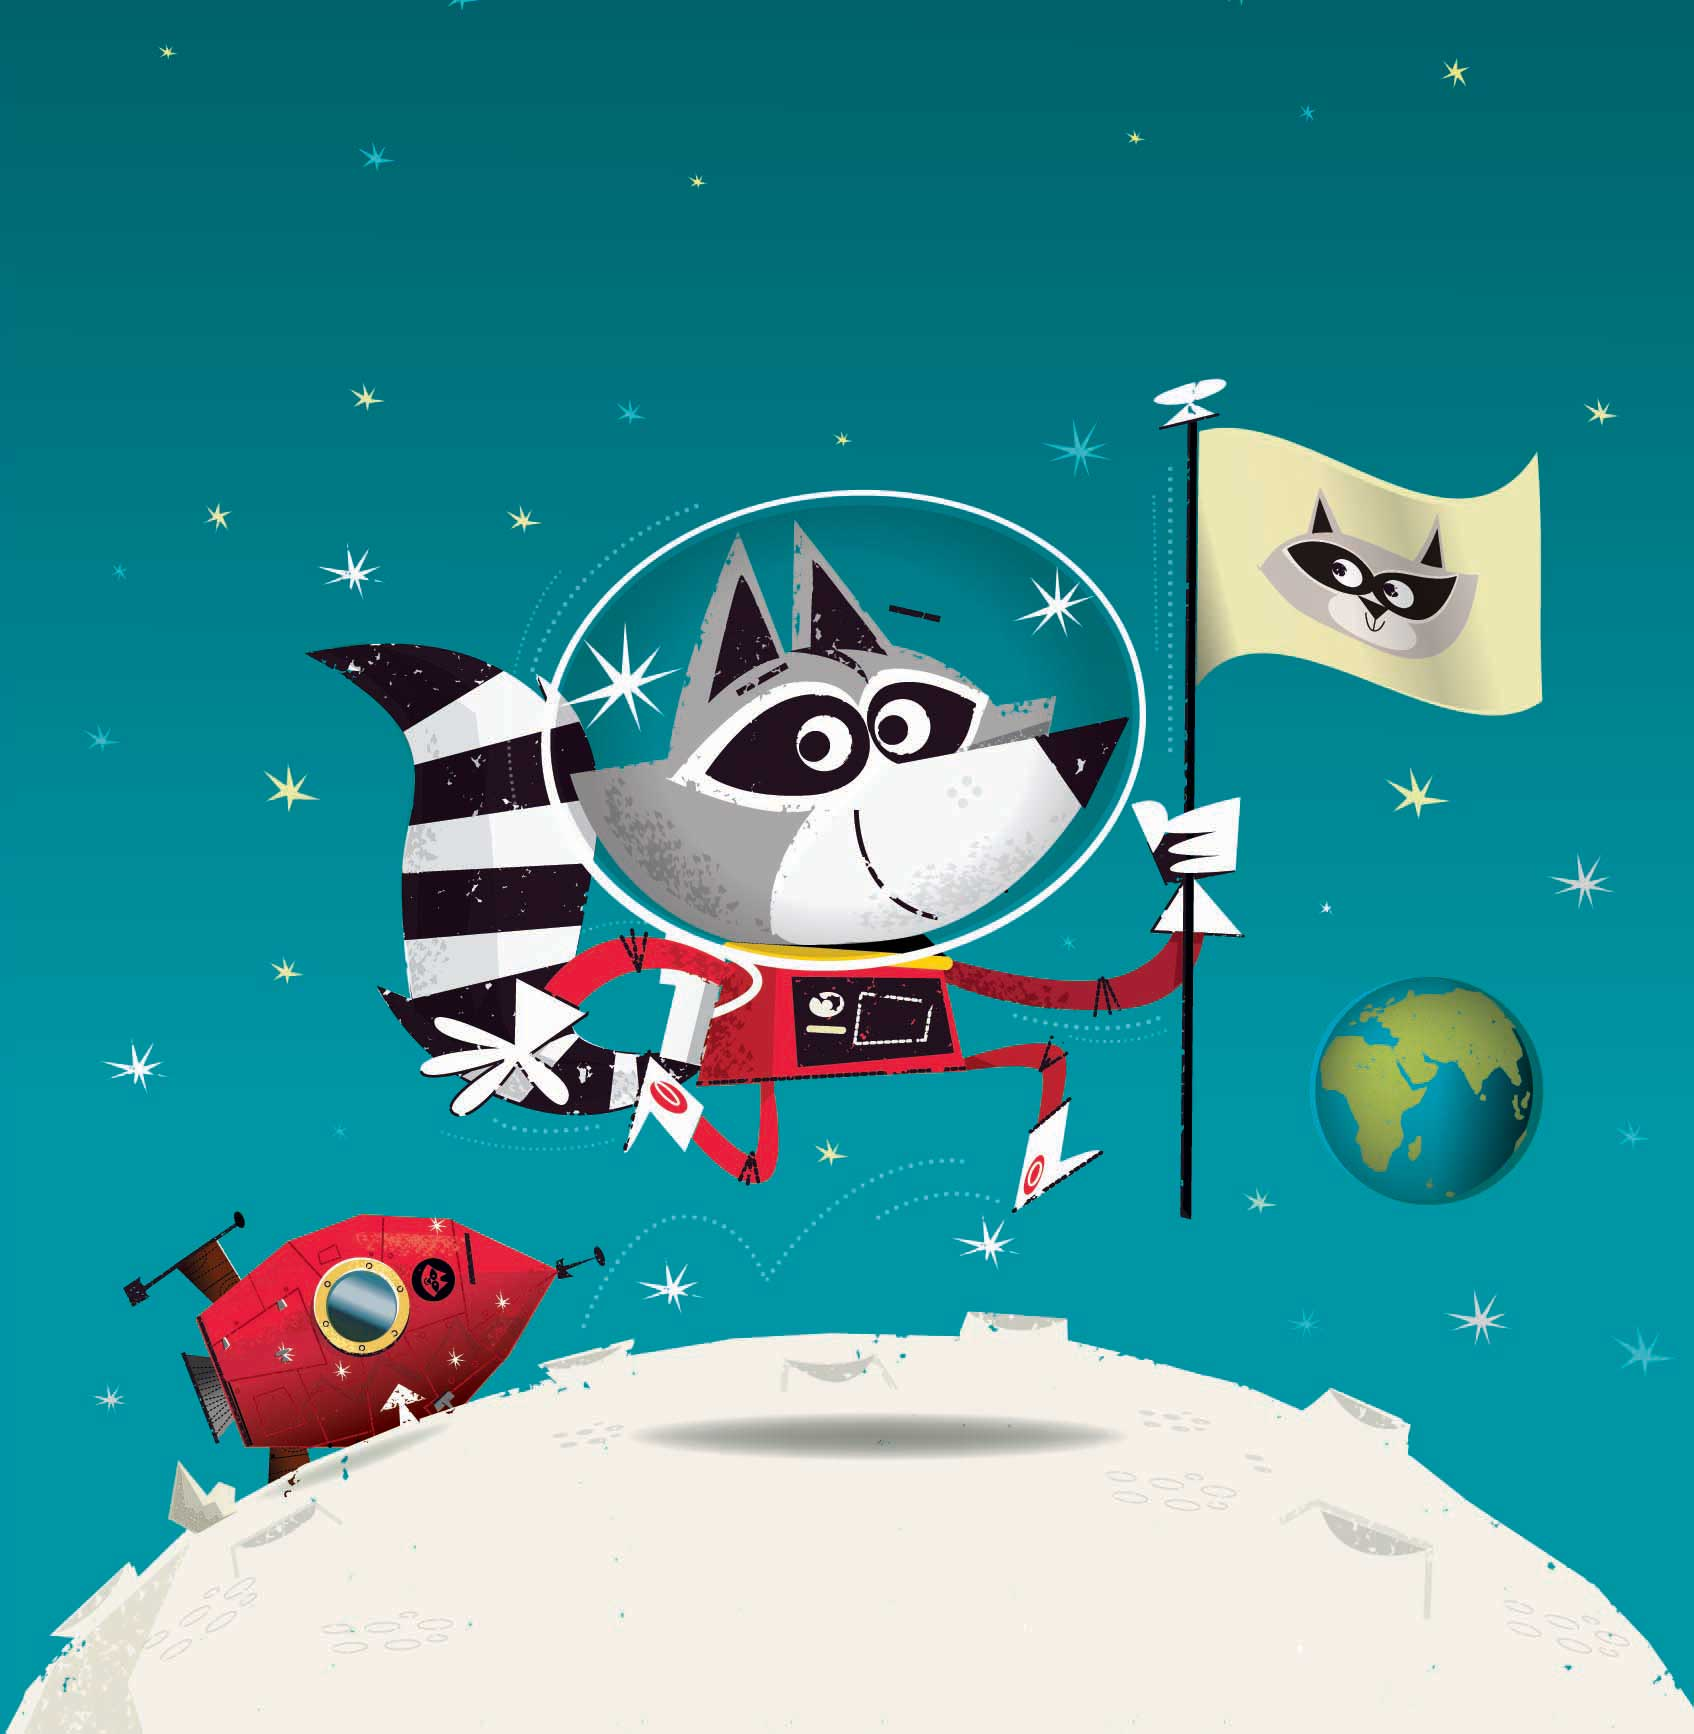 illustration-space-racoon-planting-flag-on-moon-David-Semple